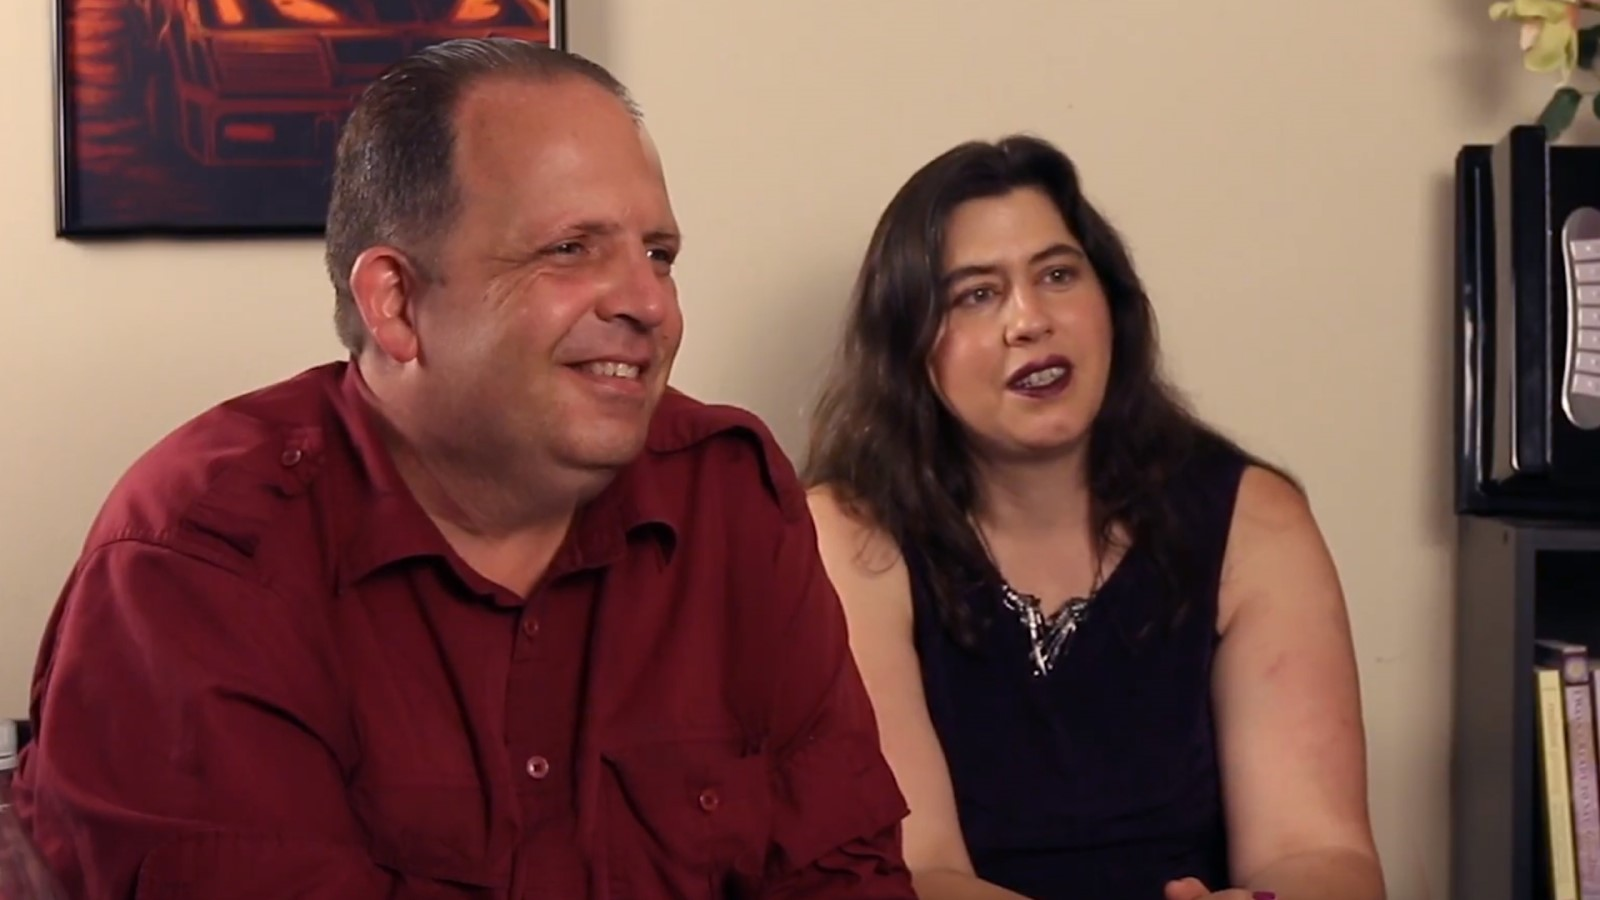 They Played Productions - Conversation with Erik and Thea Interview, Video,